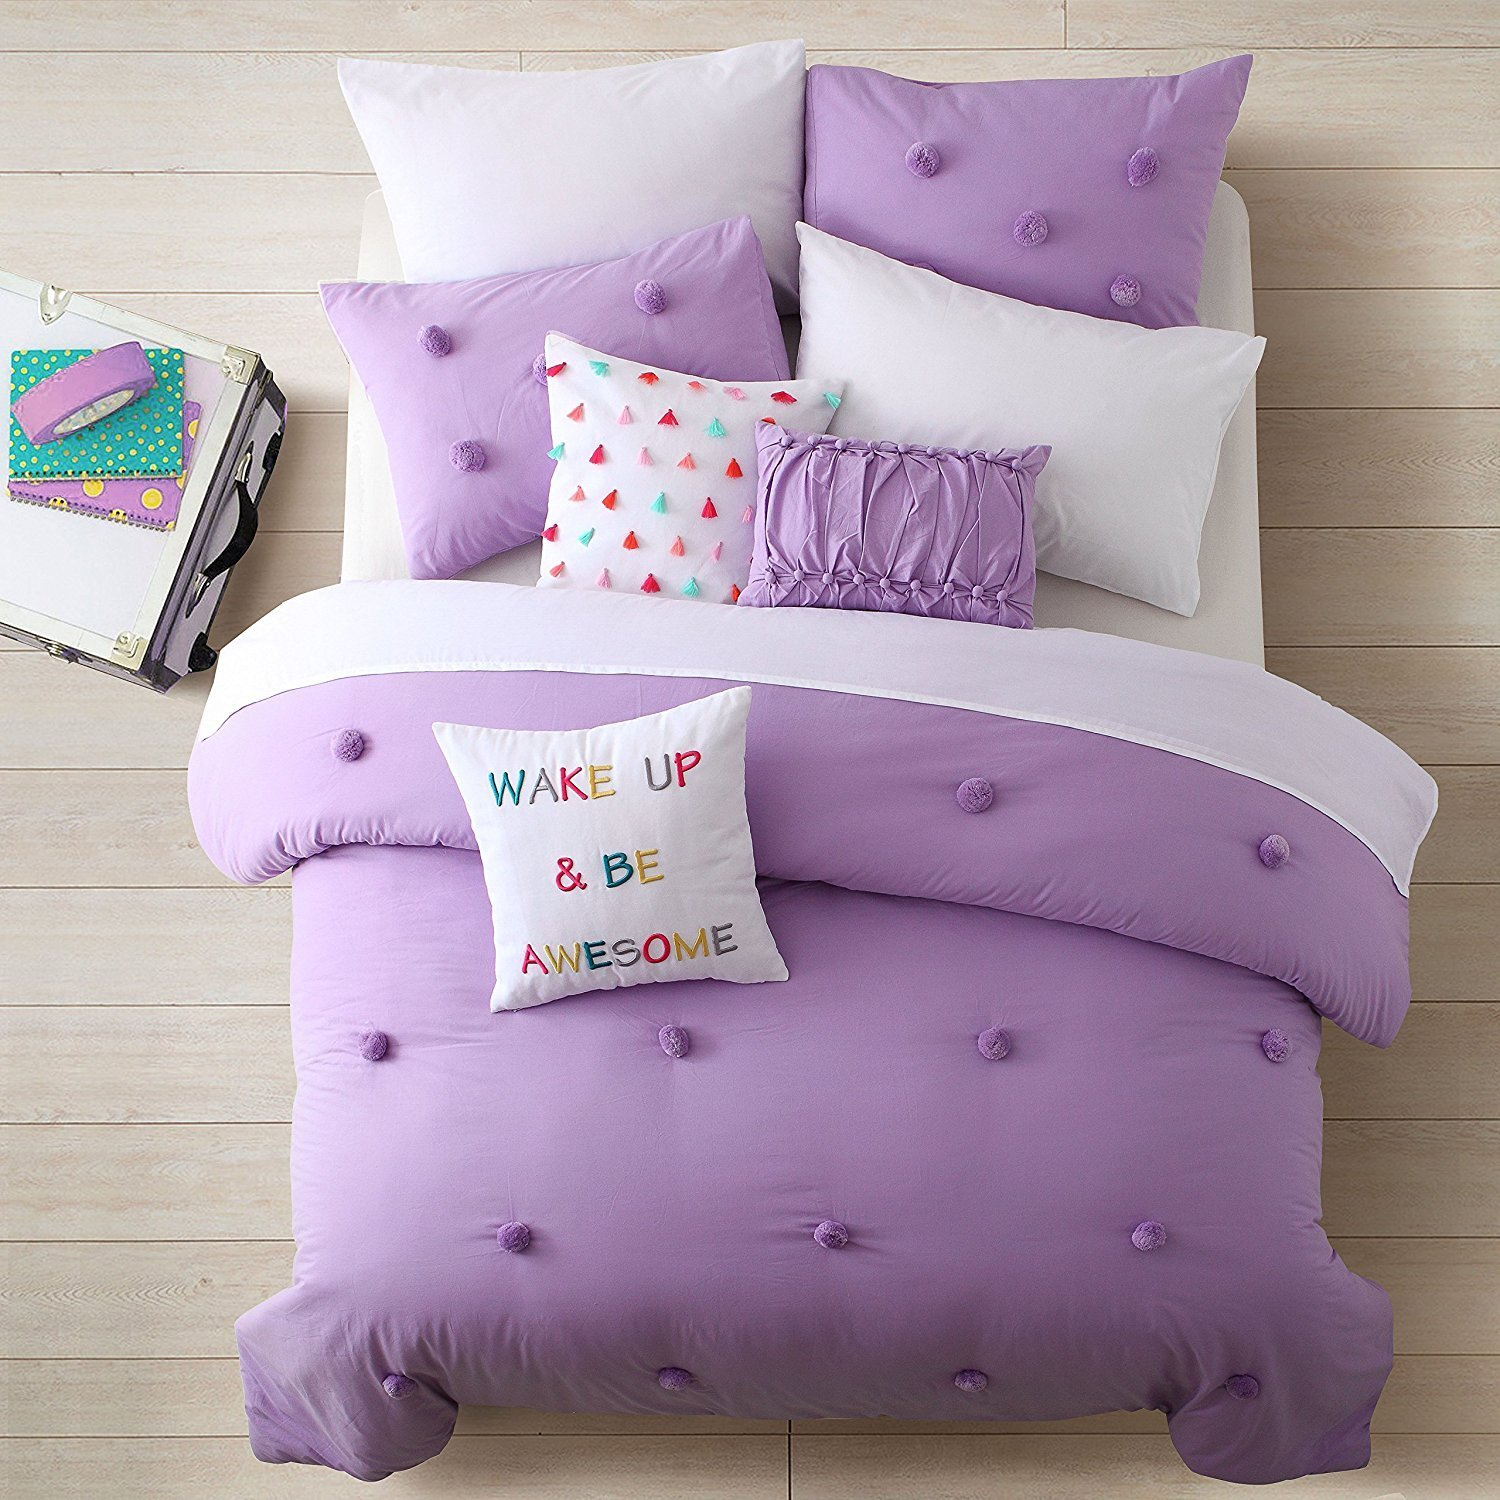 Awesome teen bedding